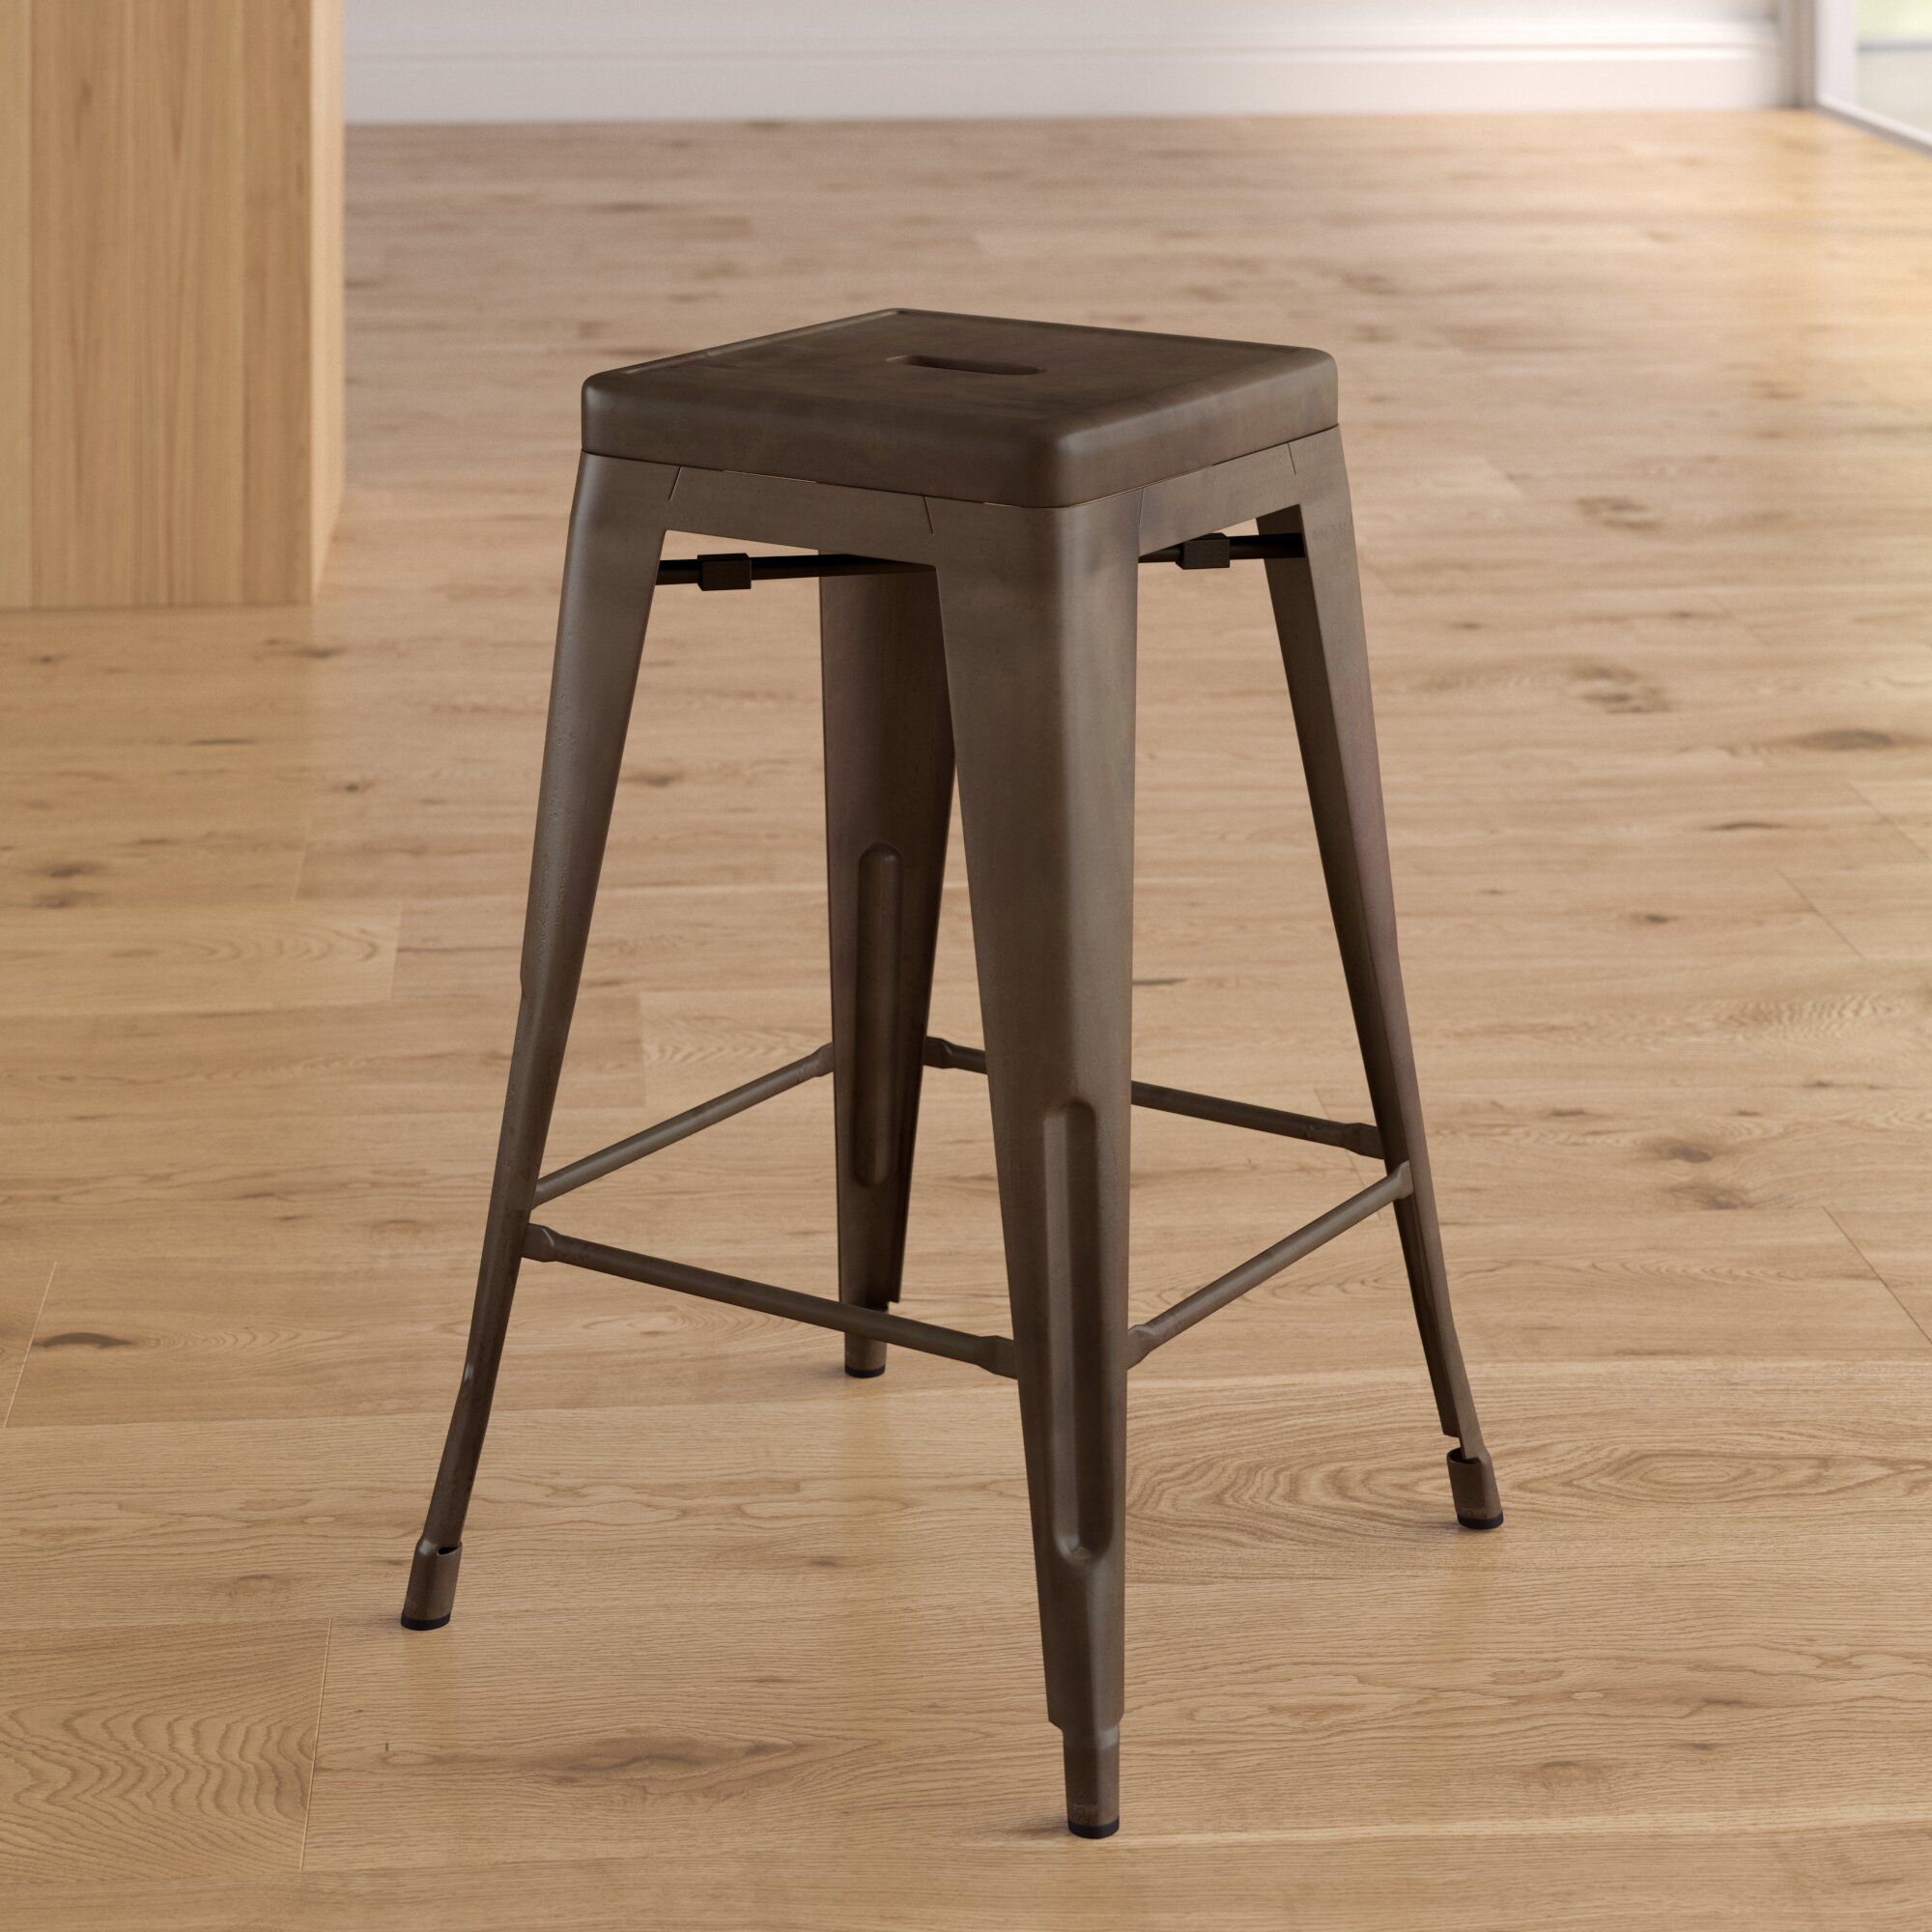 Incredible 300 Lbs To 400 Lbs Capacity Bronze Stackable Bar Stools You Ibusinesslaw Wood Chair Design Ideas Ibusinesslaworg